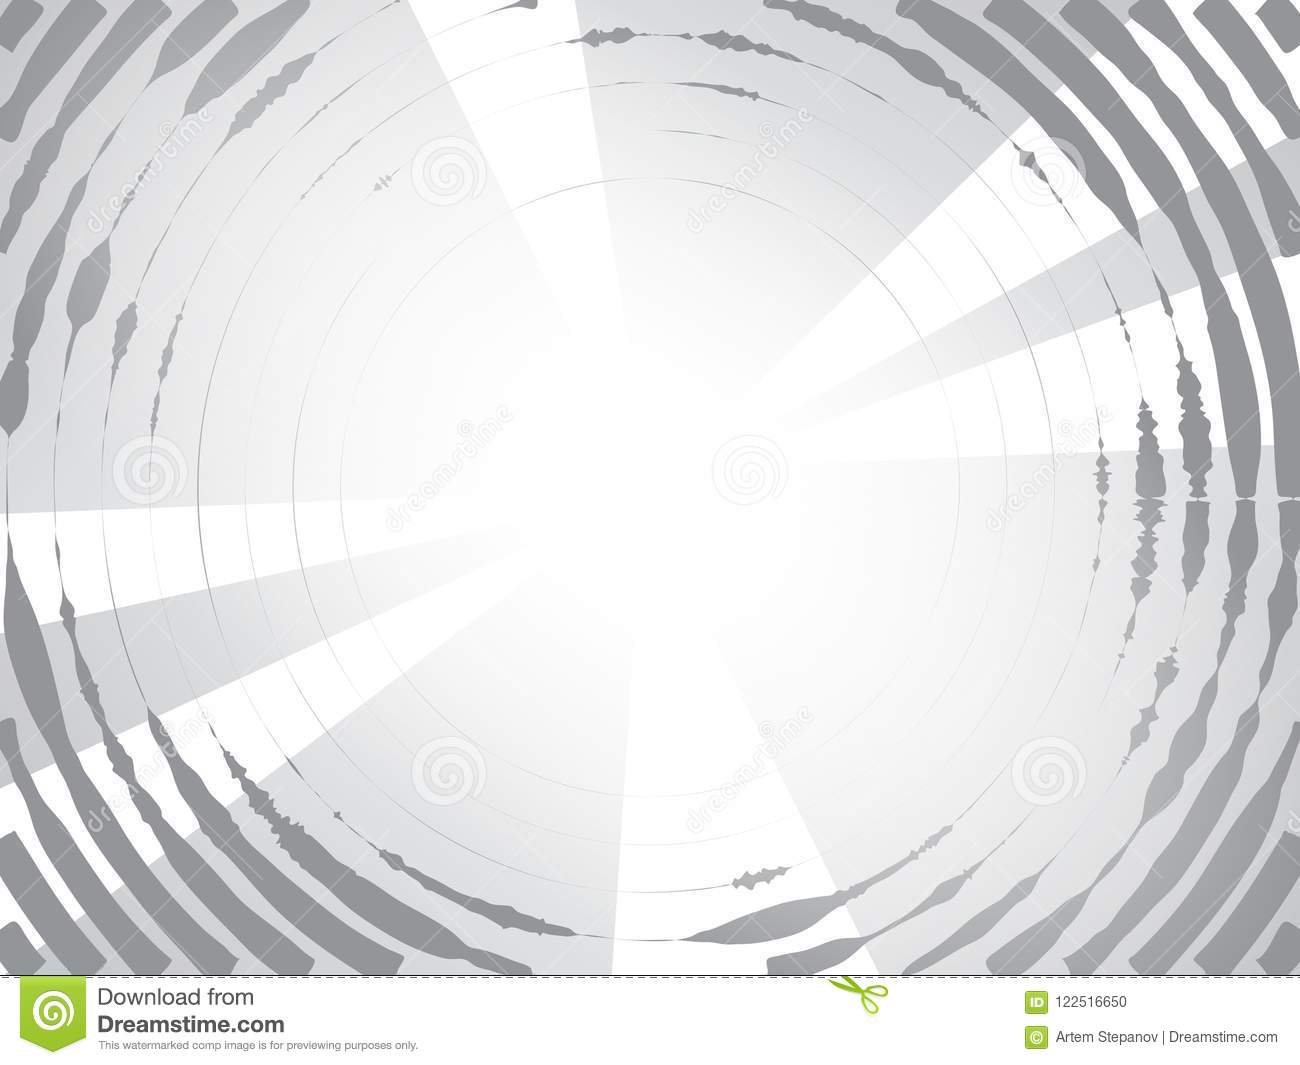 Concentric circles halftone background